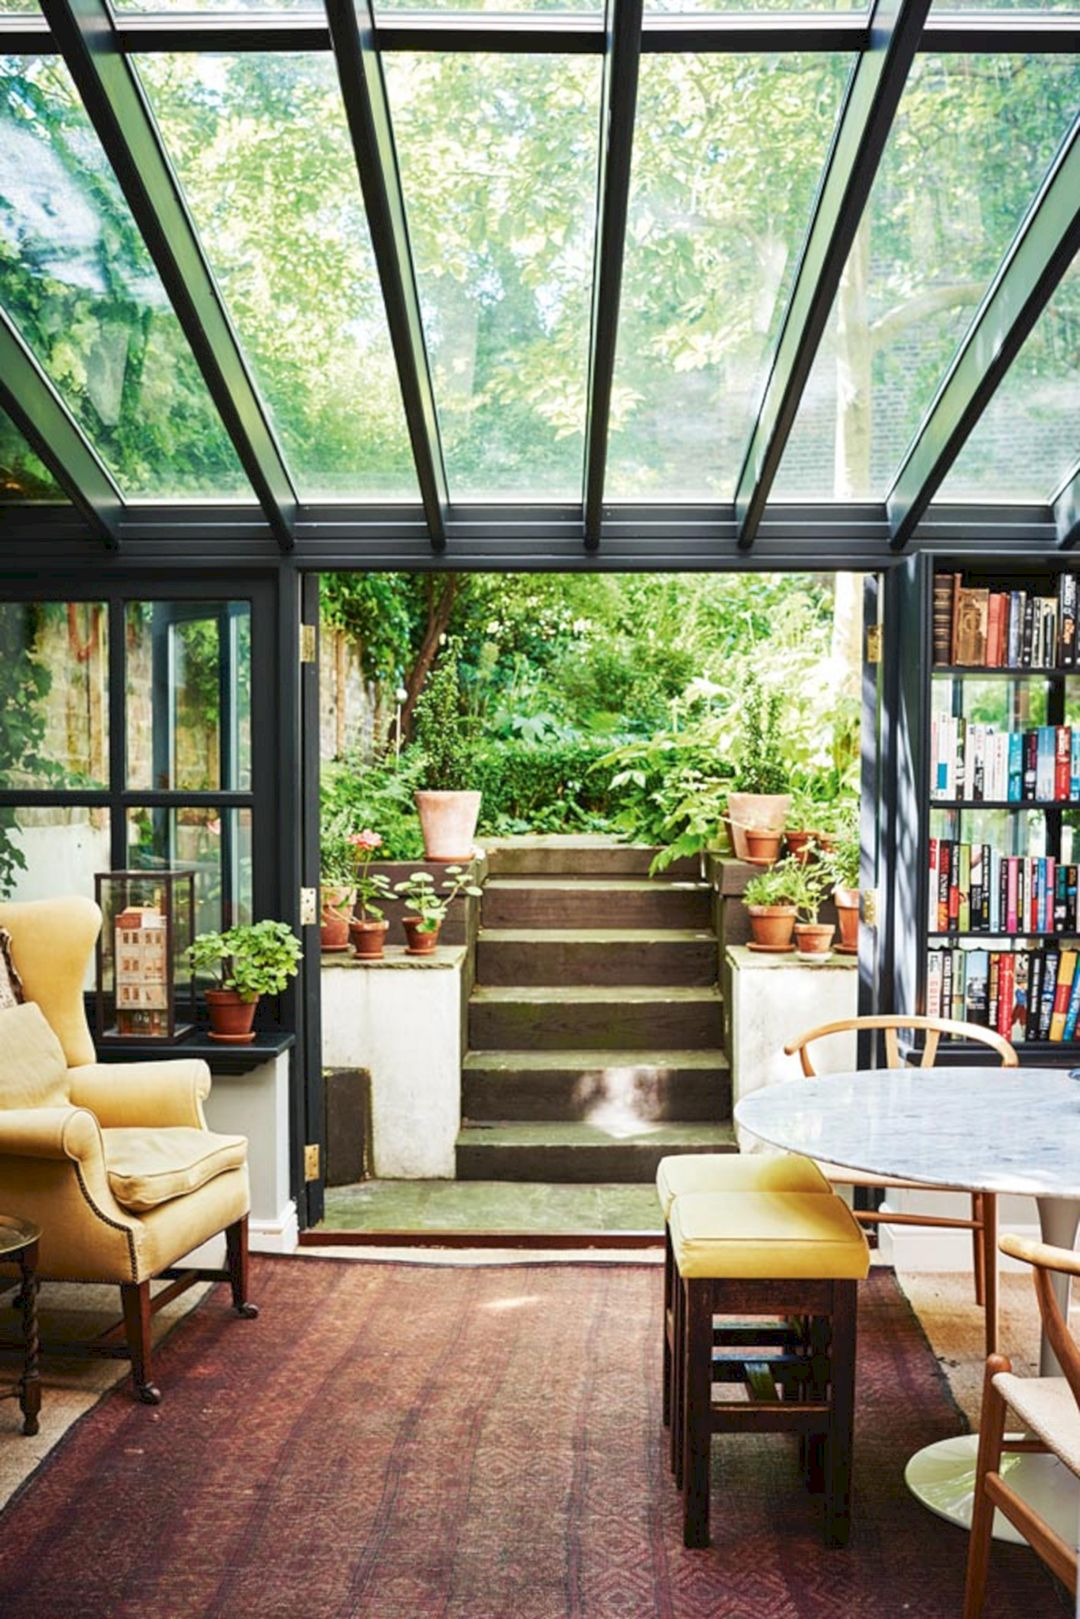 5 Stunning Sunroom Design Ideas